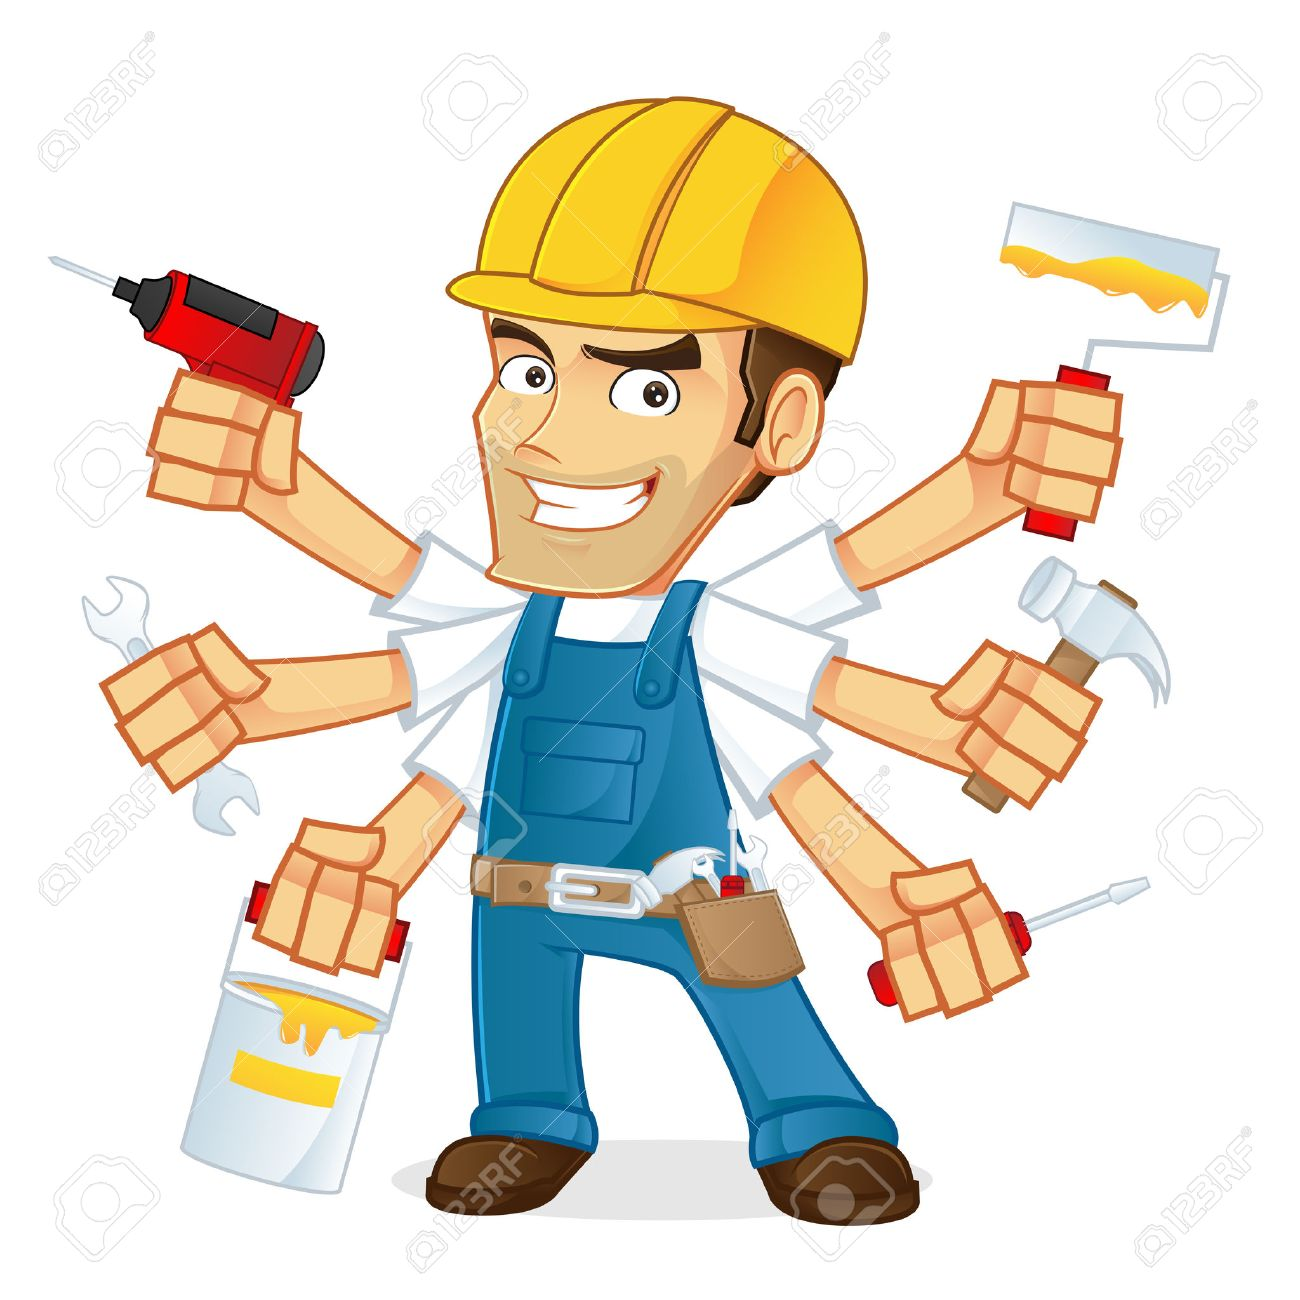 17 648 handyman cliparts stock vector and royalty free handyman rh 123rf com clipart handyman services clipart handyman with tools